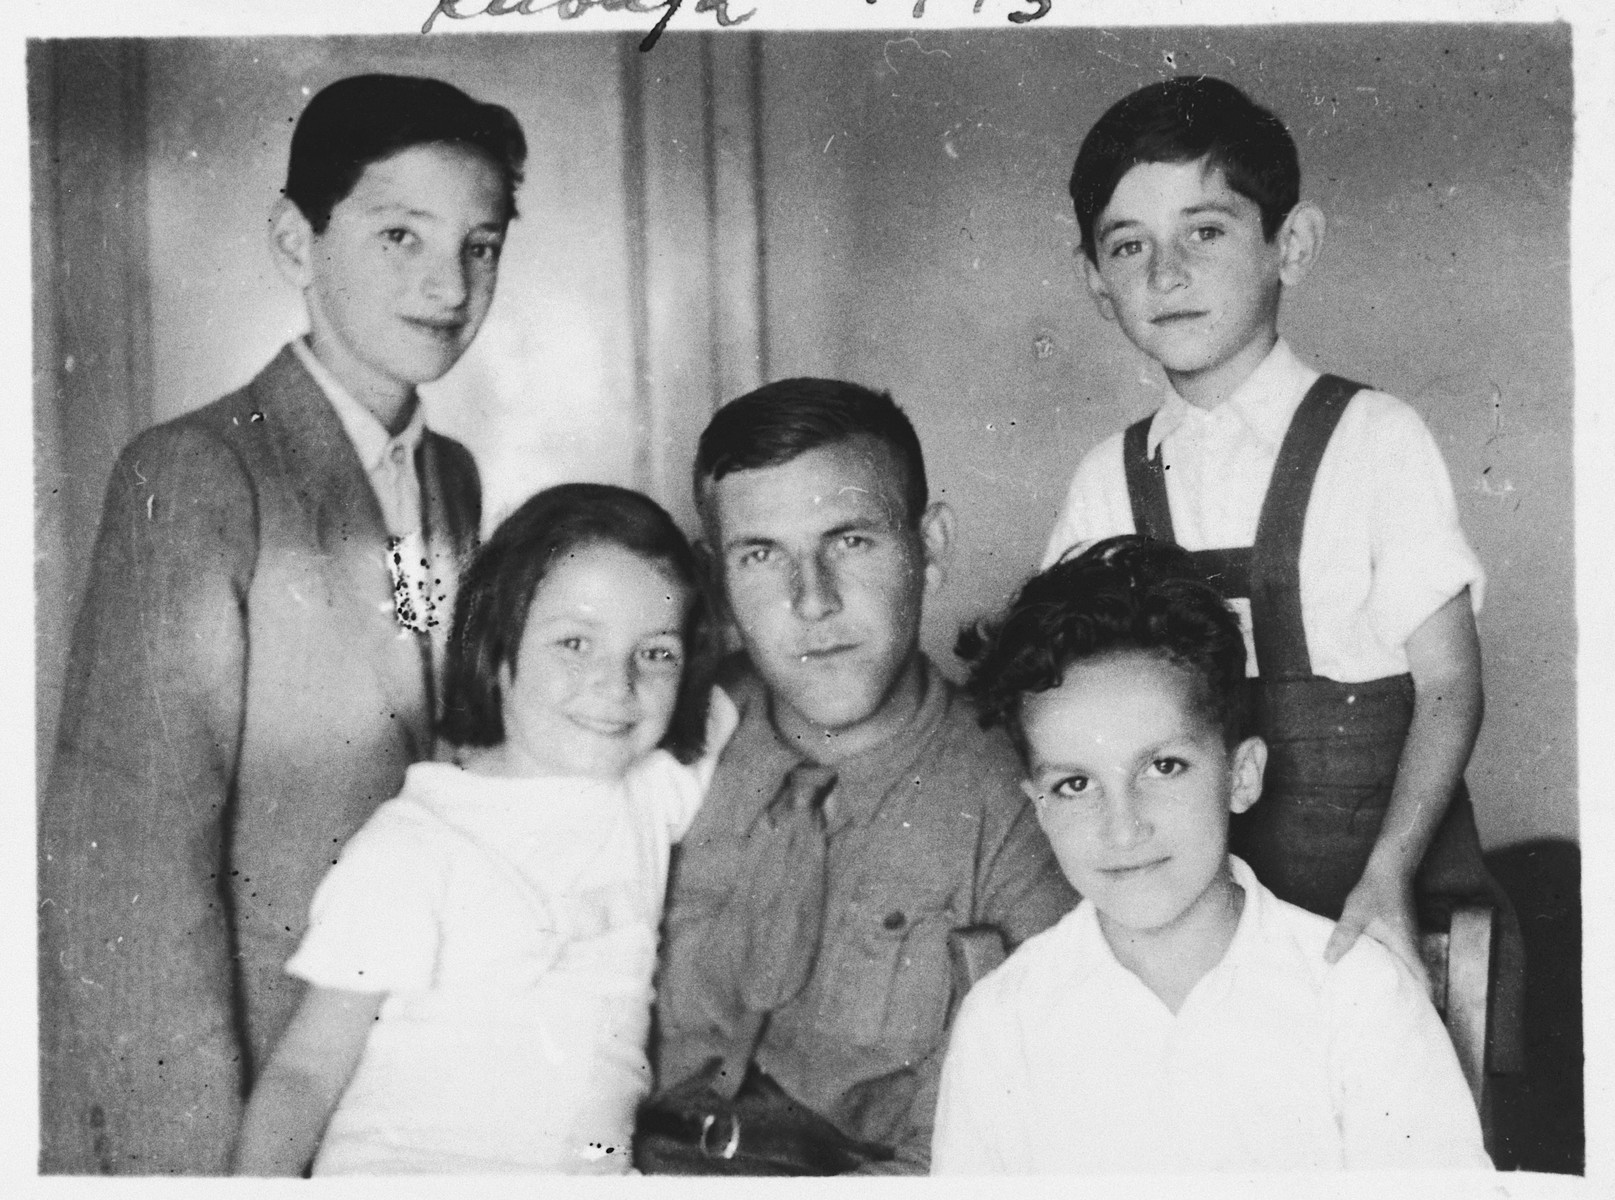 A group of Jewish refugee children living in an apartment house in Kavaja, Albania pose with an Italian soldier who is their tutor.  Among those pictured are Jasa Altarac (bottom, right), Gavra Mandil (top, right) and Irena Mandil (bottom, left).